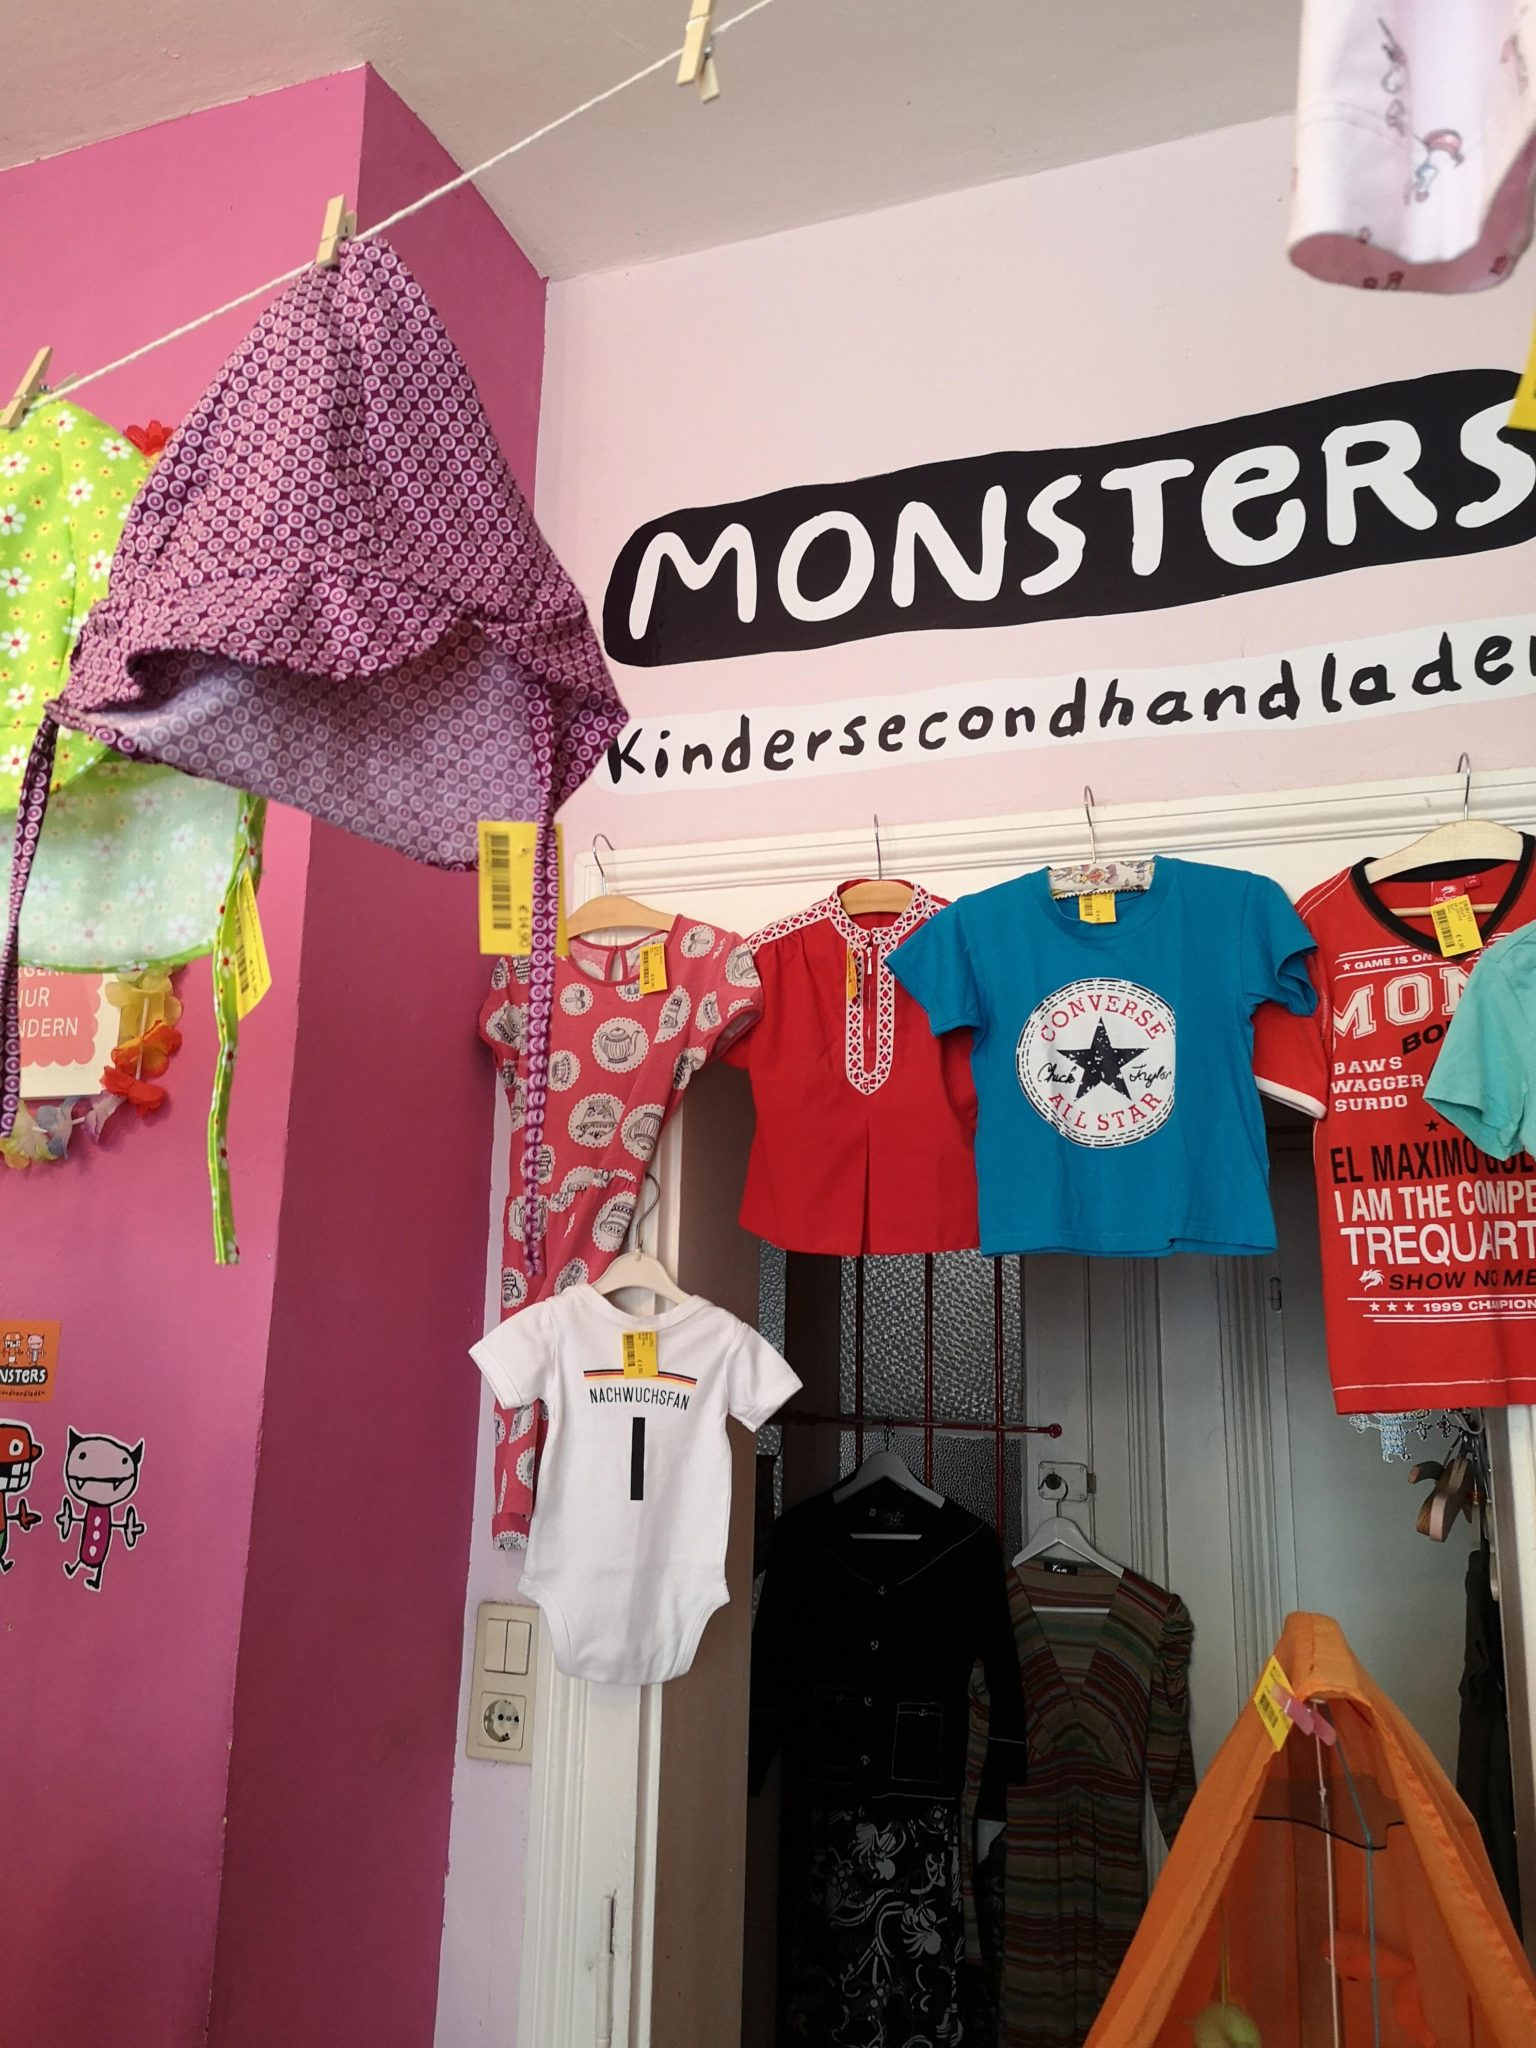 Monsters Seconhandladen für Kinder